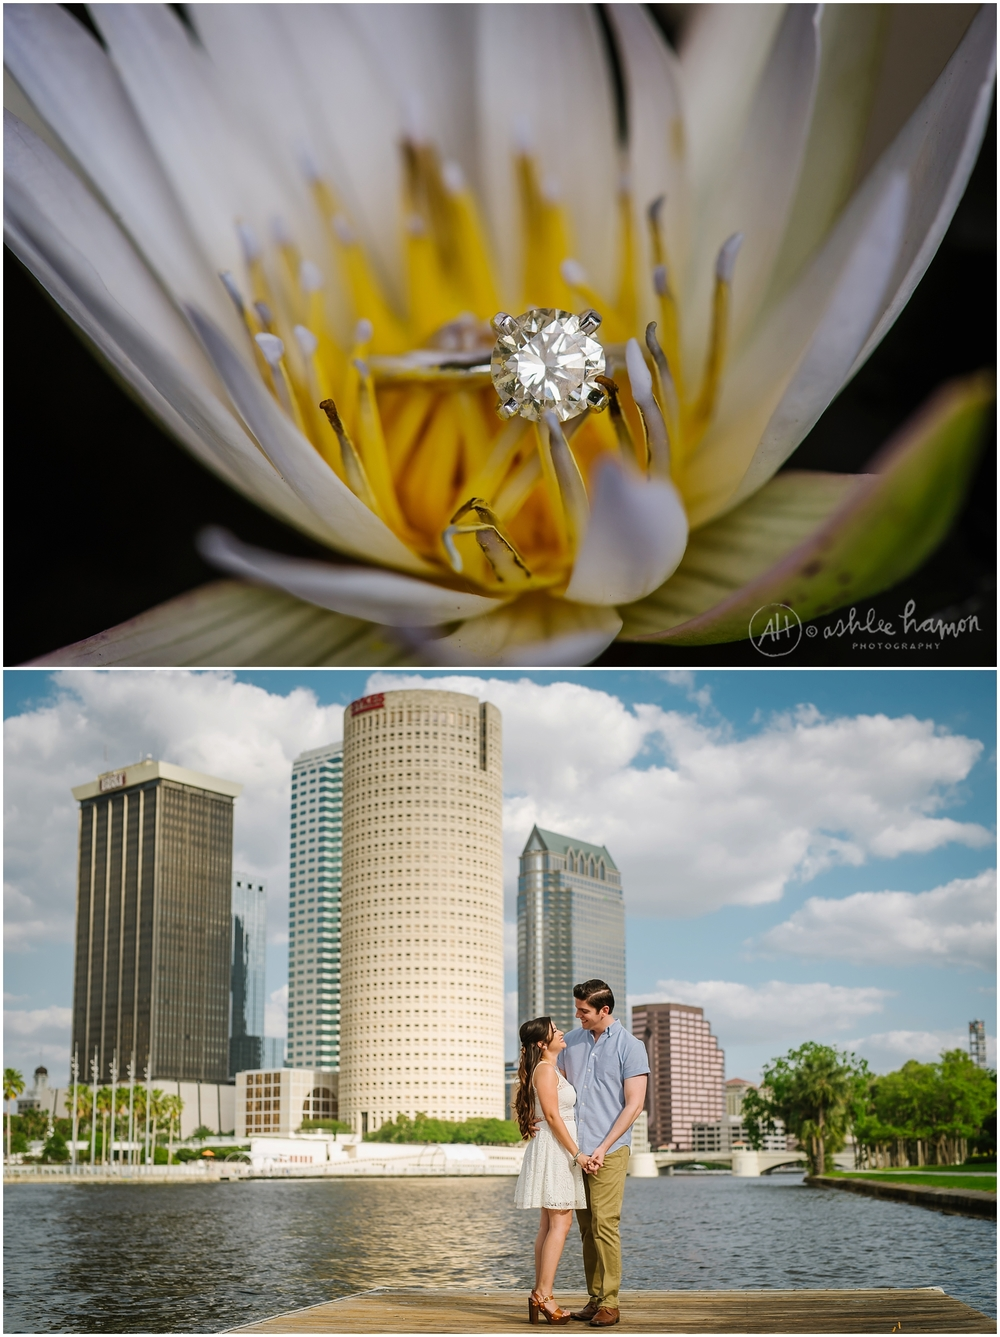 downtown-tampa-engagement-photography-ashlee-hamon_0000.jpg